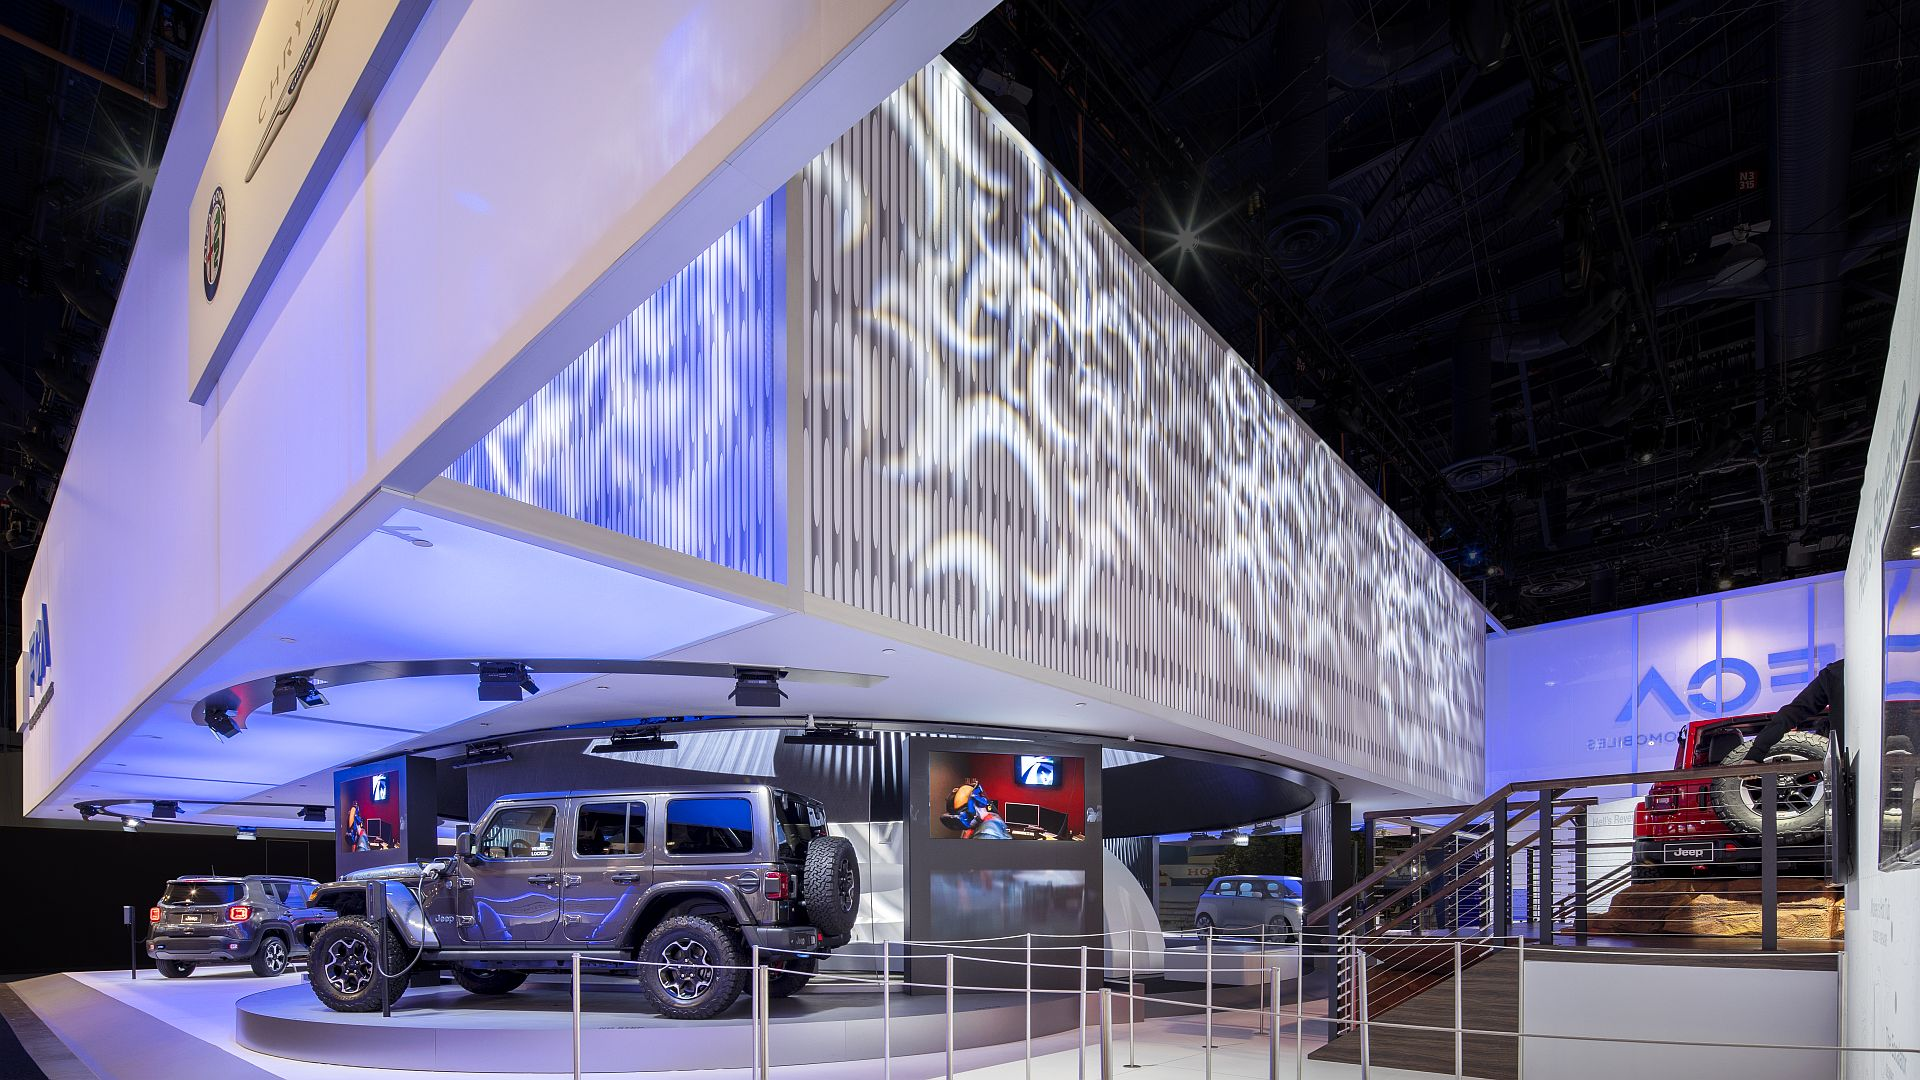 Massive Moss canopy for FCA at CES